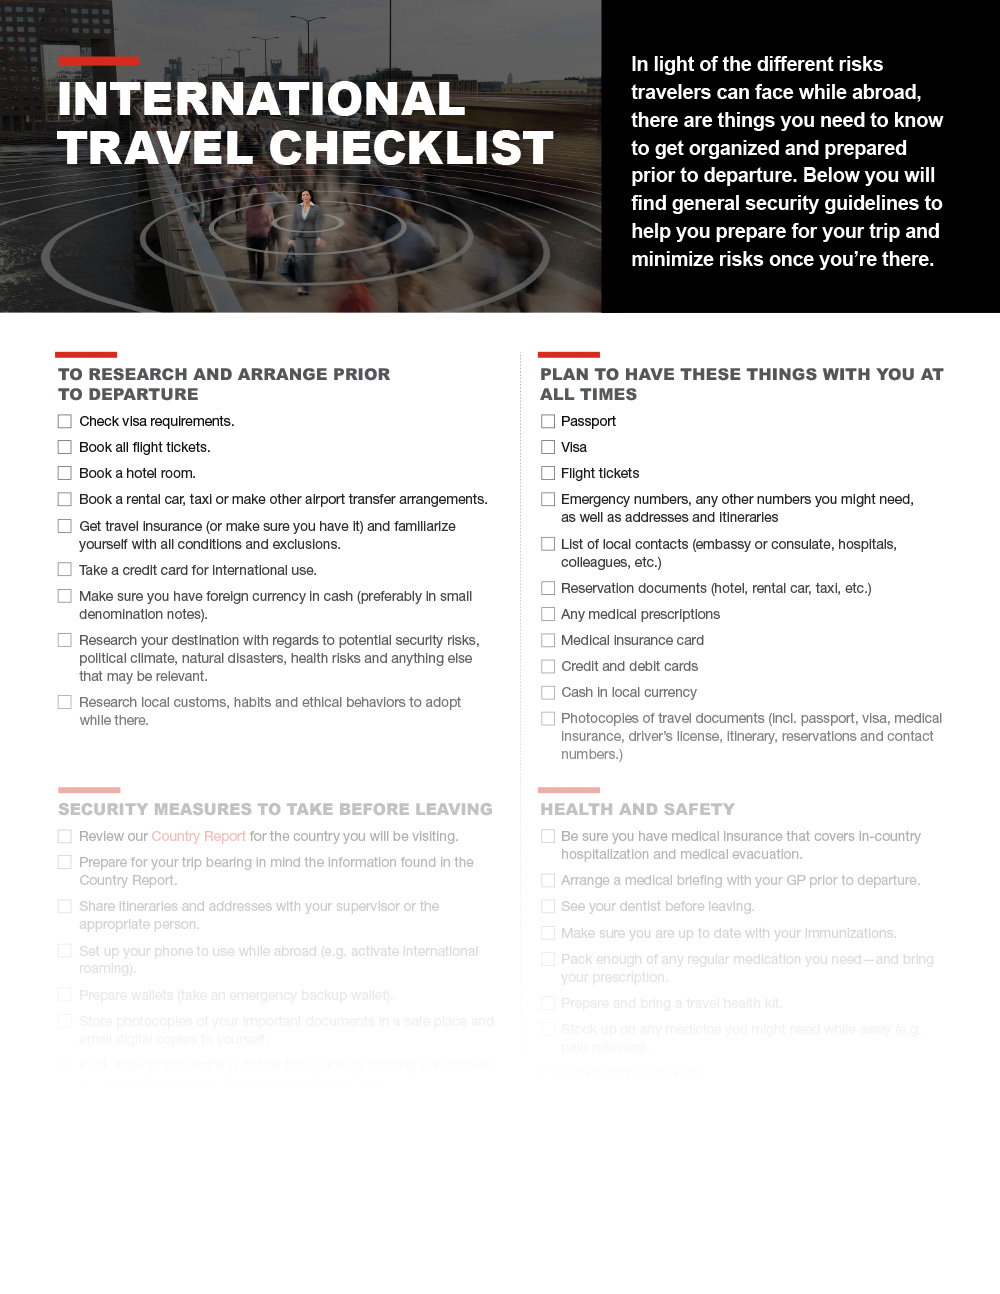 International Travel Checklist